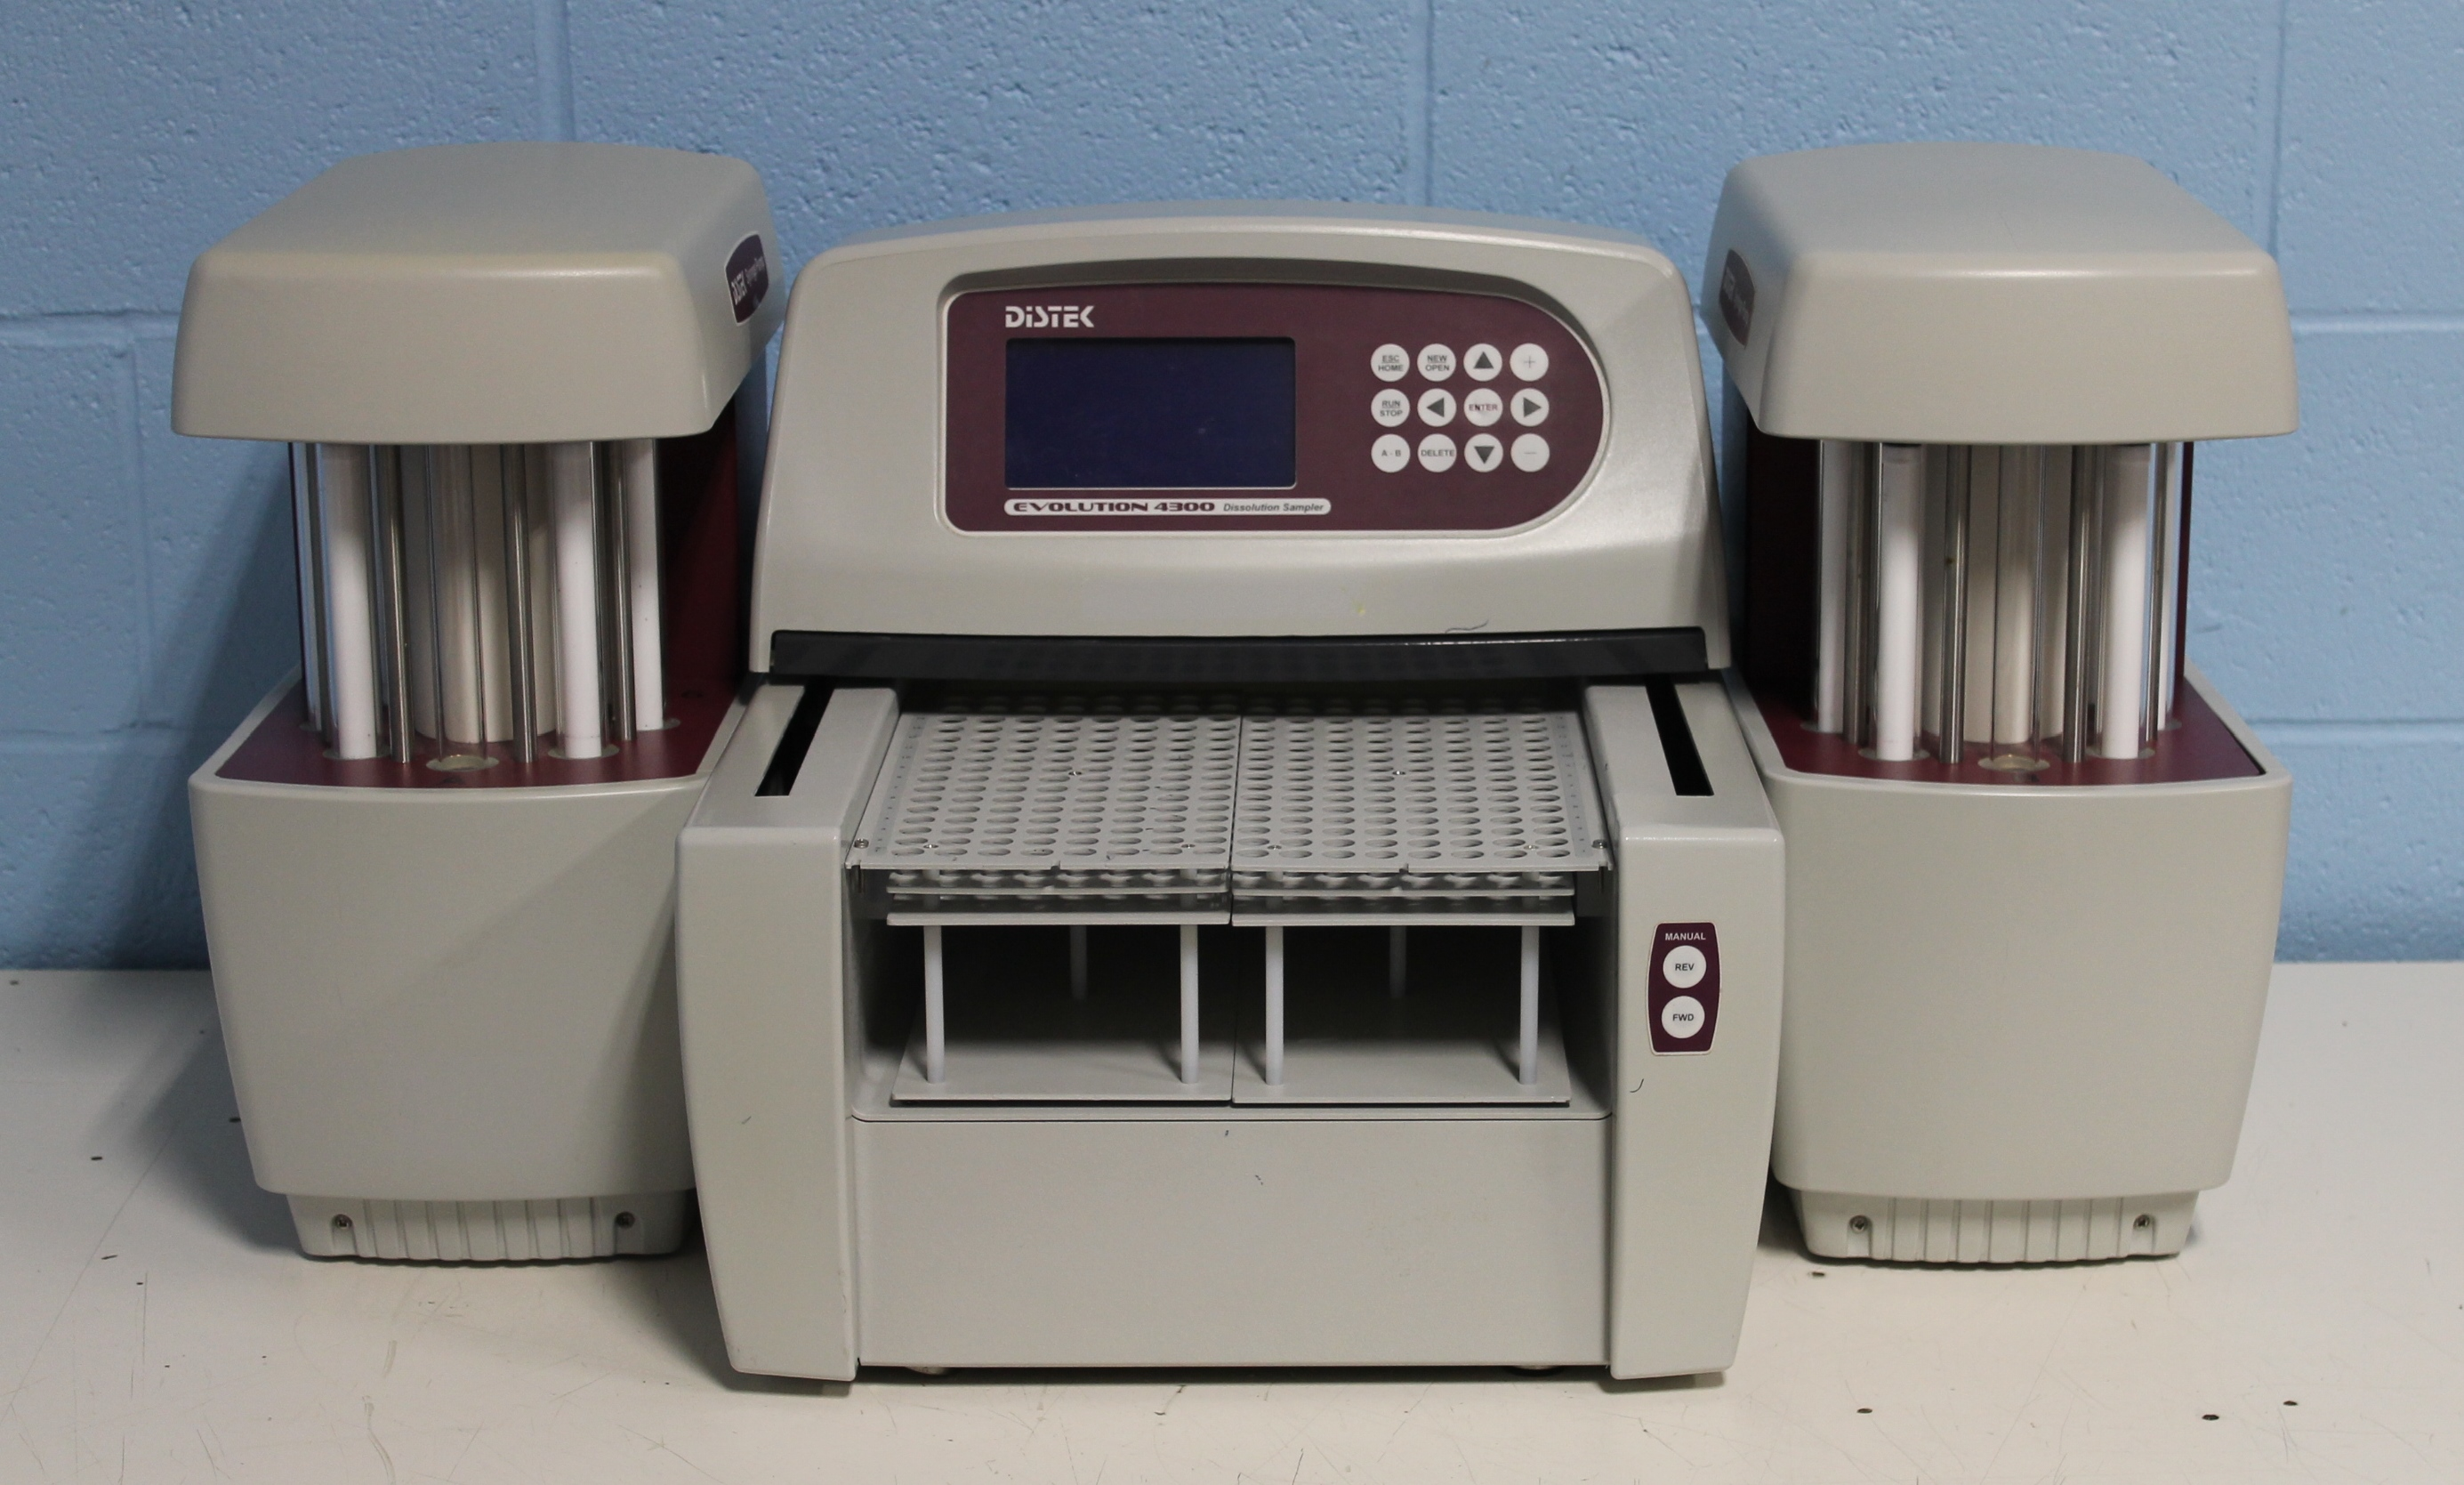 Distek Evolution 4300 Programmable Syringe Pump Dissolution Sampler Image